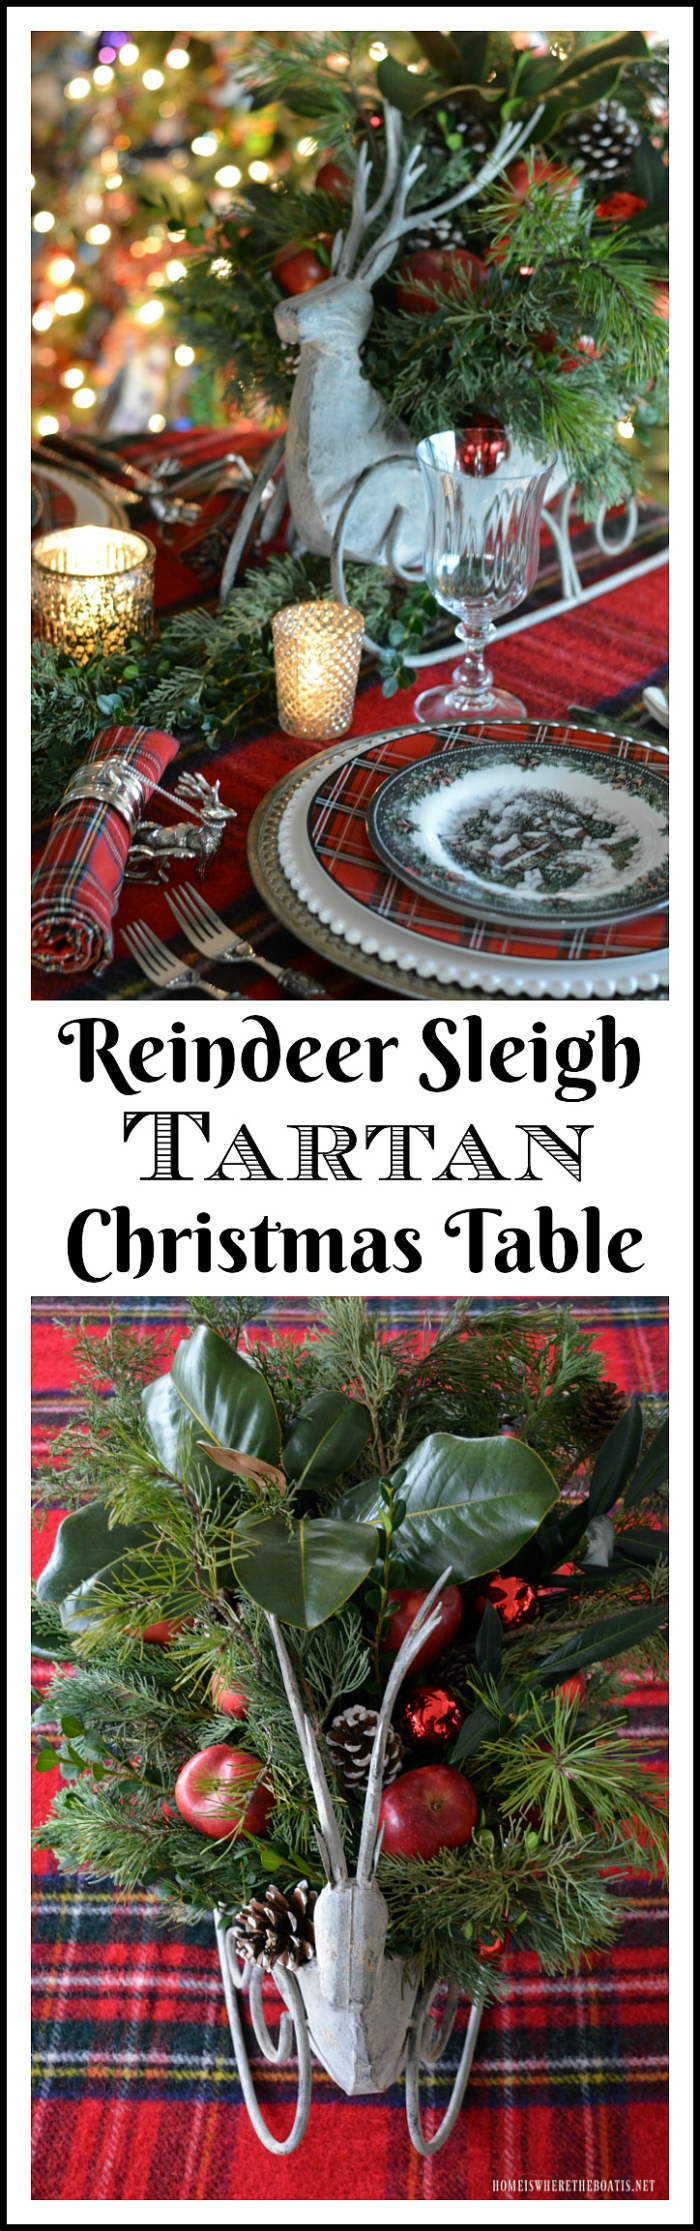 reindeer-sleigh-tartan-christmas-table